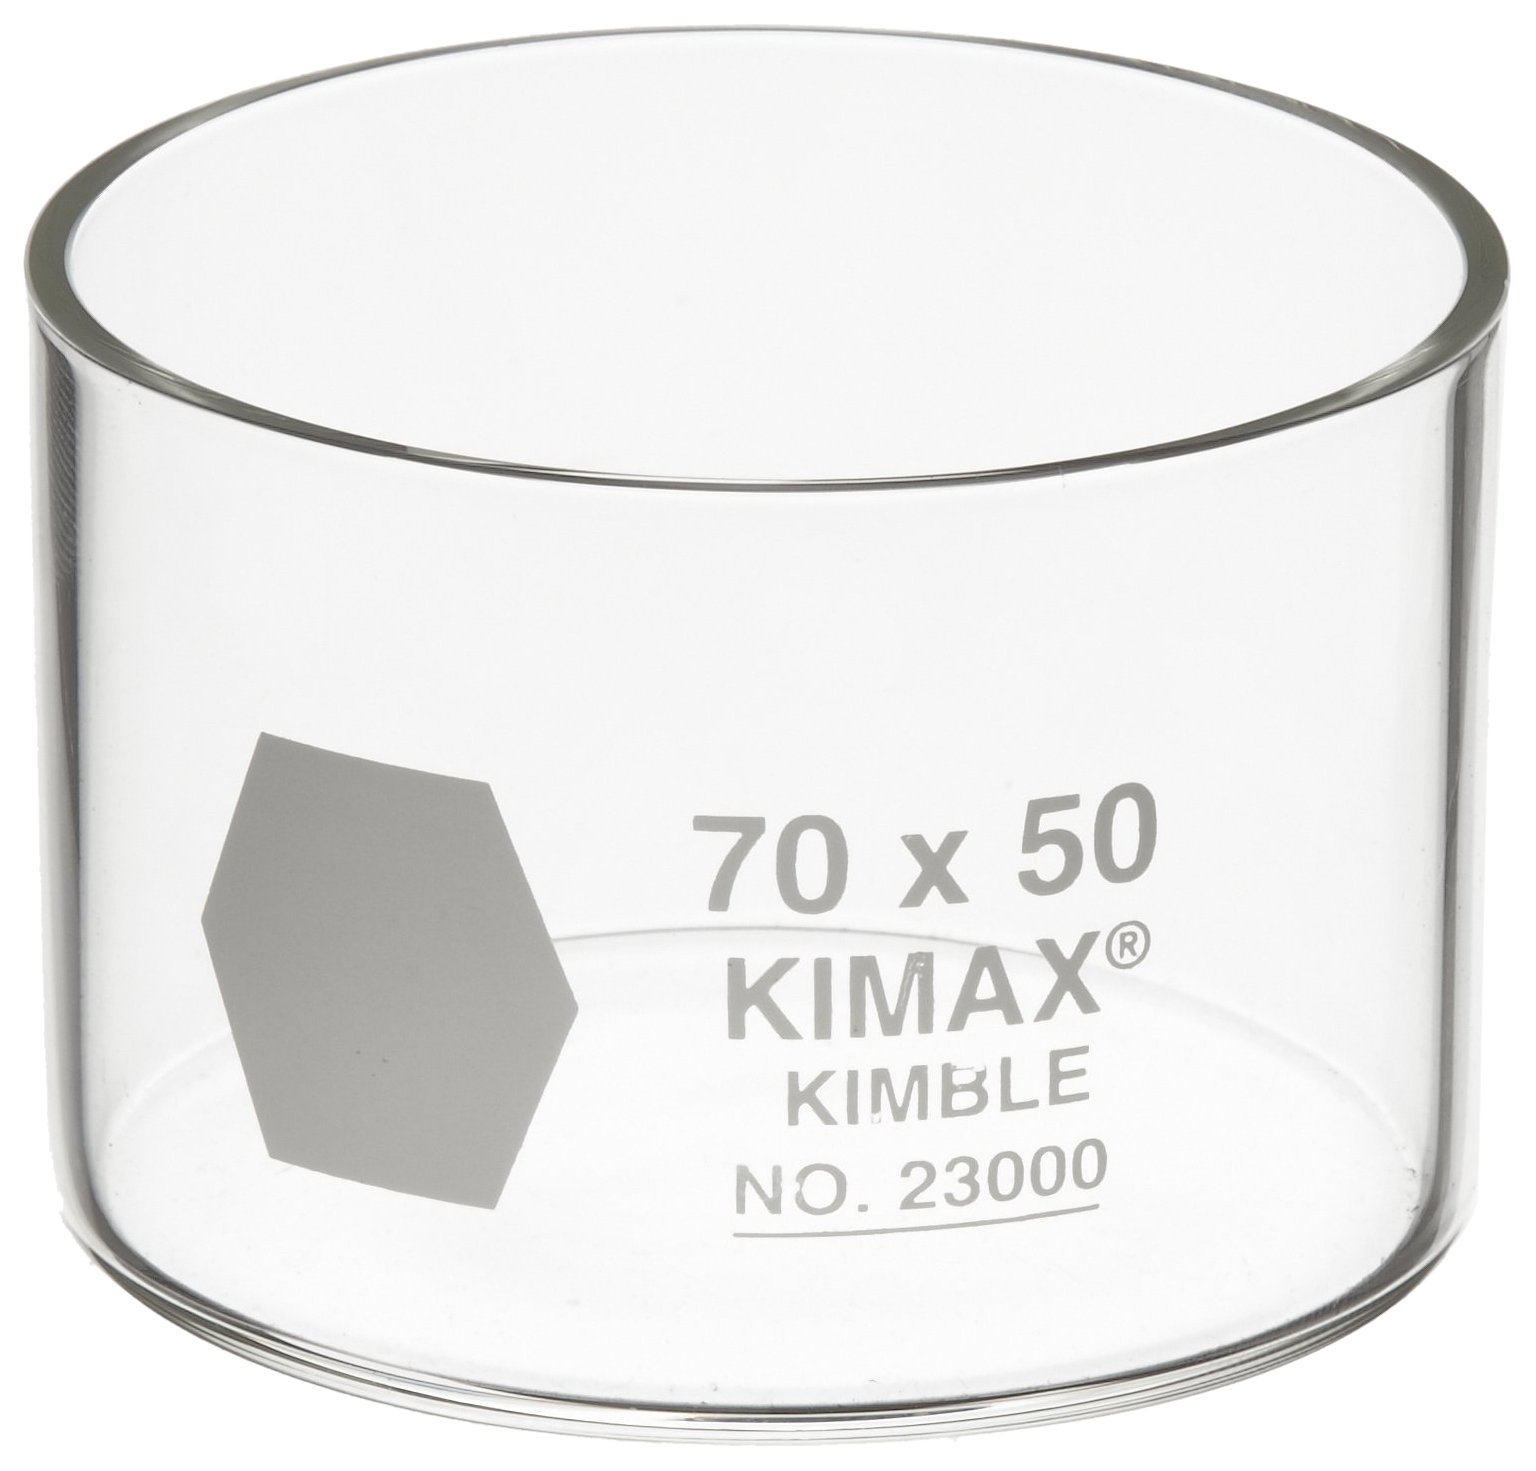 Kimble 23000-7050 Glass Crystallizing Dish, 70mm Diameter x 50mm Height (Pack of 6) by Kimble (Image #1)